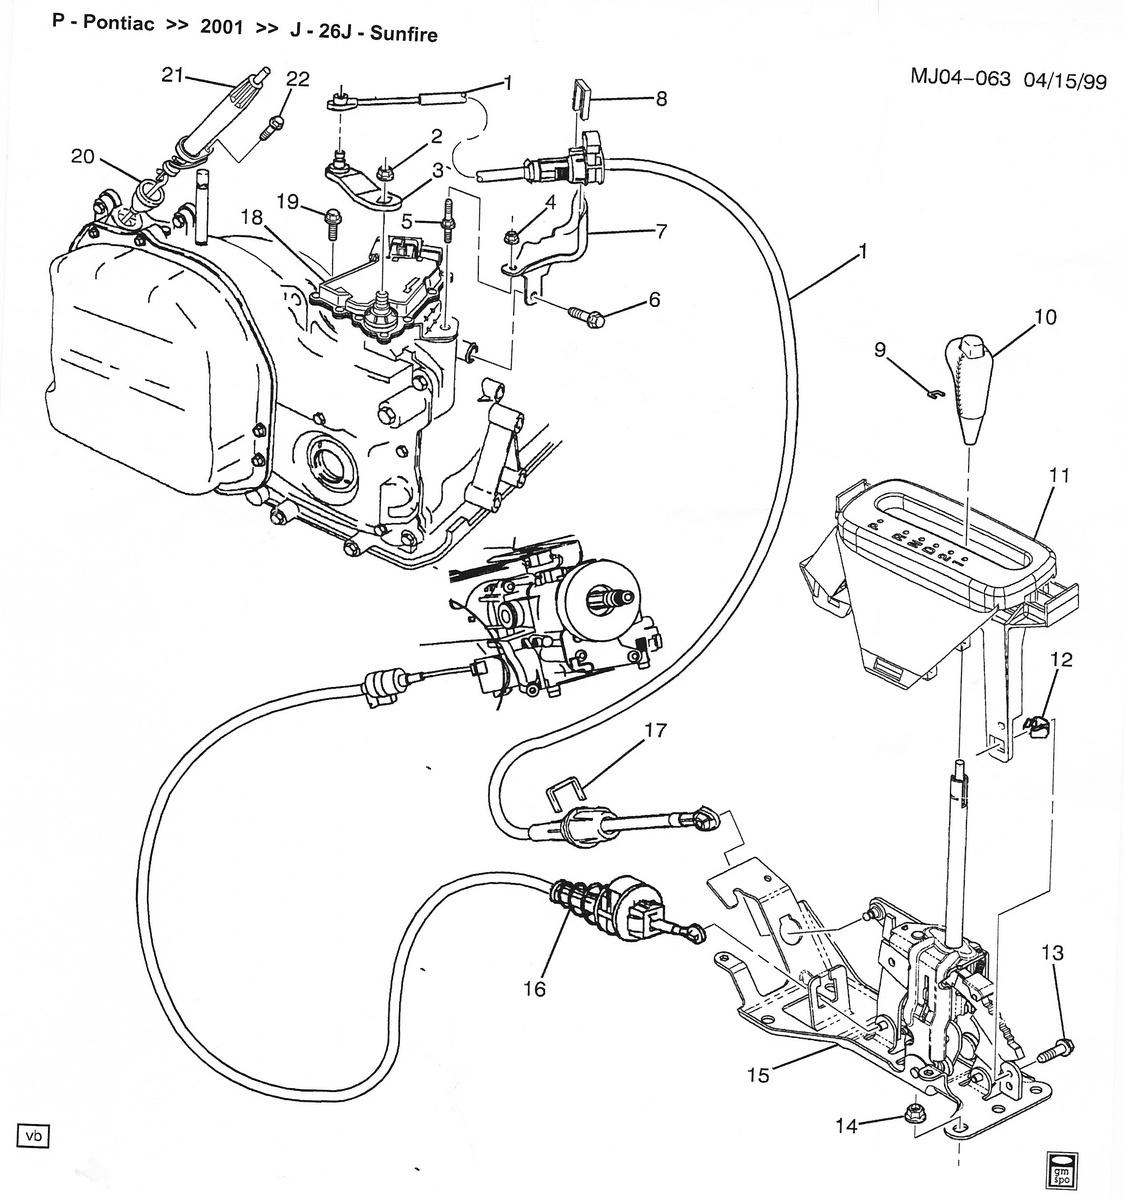 2001 Dodge Dakota Engine  partment in addition T15104150 Location pcm together with 393853929888880043 furthermore Gmc Envoy Fuse Diagram moreover 1997 S 10 Blazer Vacuum Diagram 48169. on buick rainier engine diagram